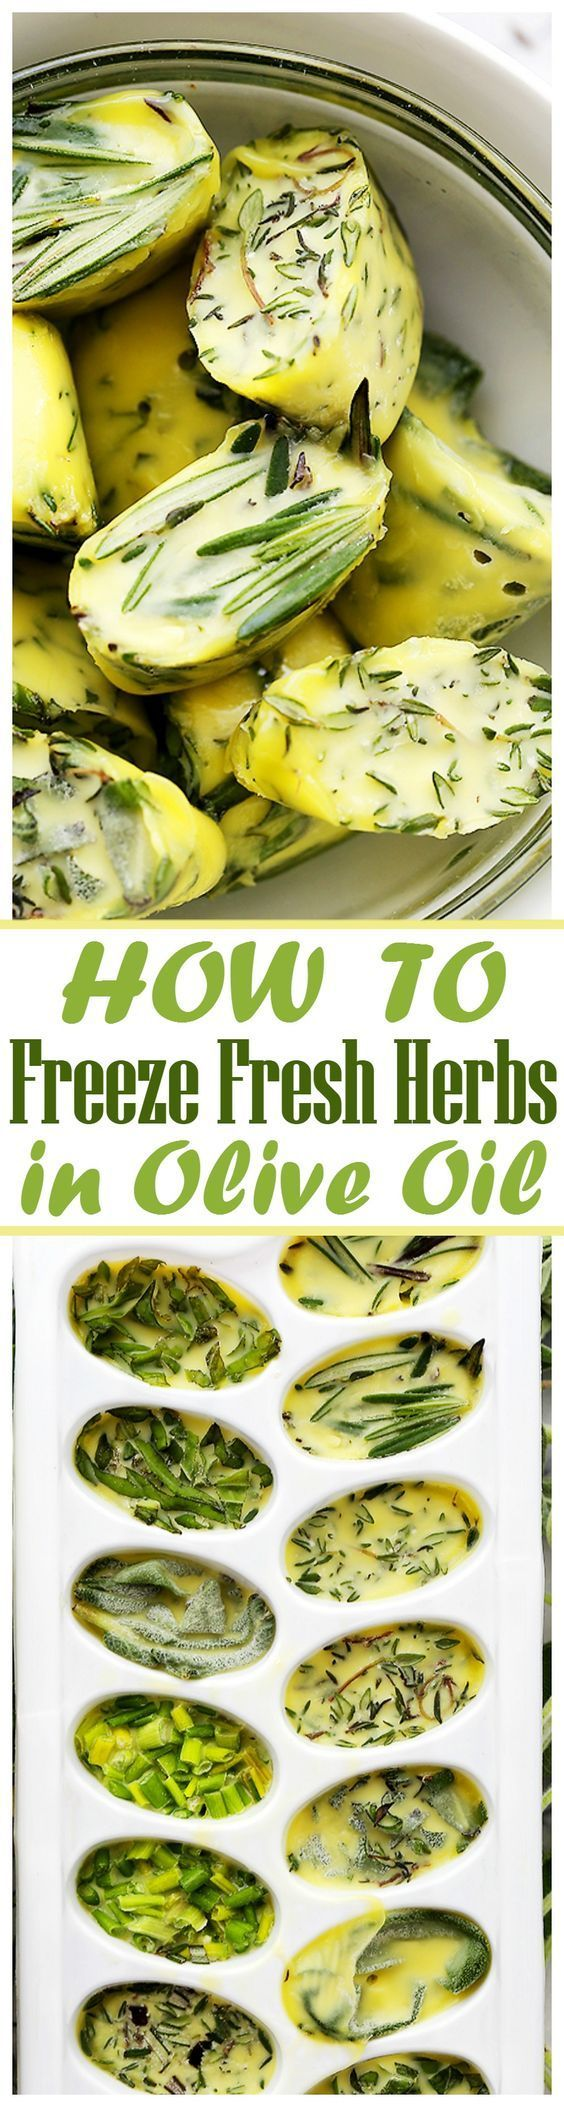 How to Freeze Fresh Herbs in Olive Oil - Freezing fresh herbs in olive oil is the perfect way to preserve herbs! AND! It can go from the freezer straight to the frying pan. (Bake Dinner Olive Oils)